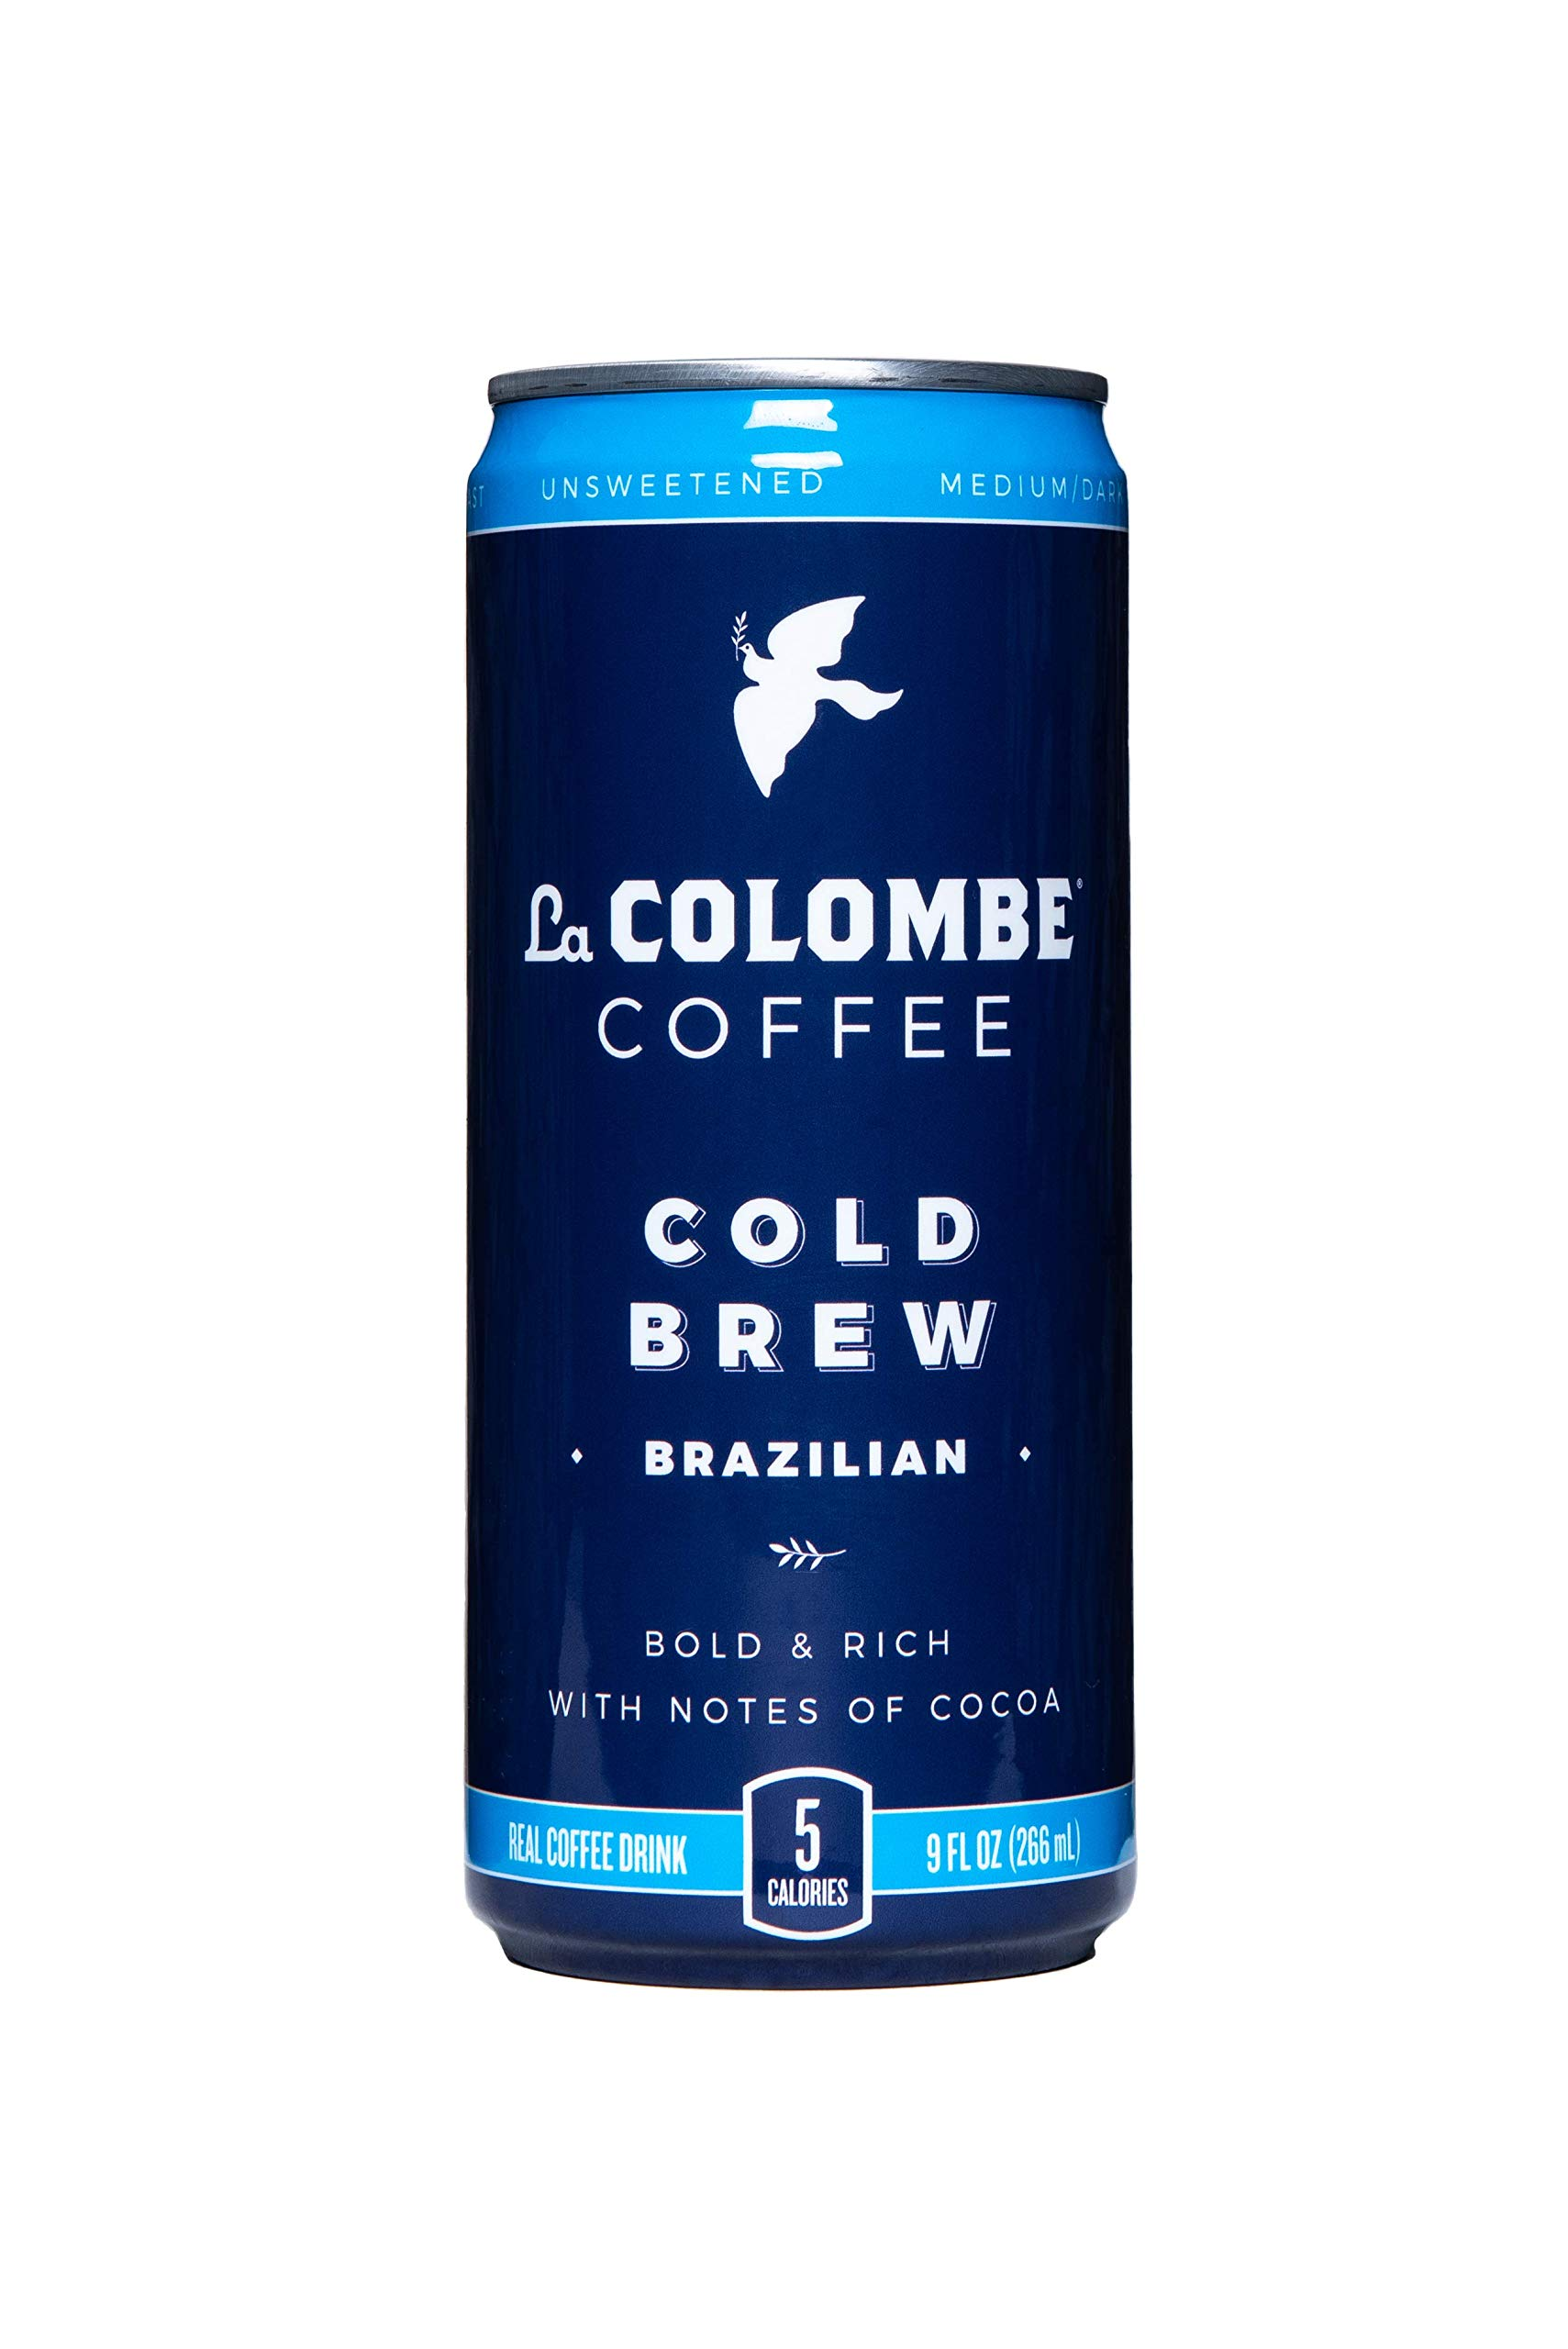 La Colombe Cold Brew Coffee - Brazilian - 9 Fluid Ounce, 16 Count - Medium Roast, Single-Origin  - Made With Real Ingredients - No Sugar Added -  Pure Black Coffee Grab And Go by La Colombe